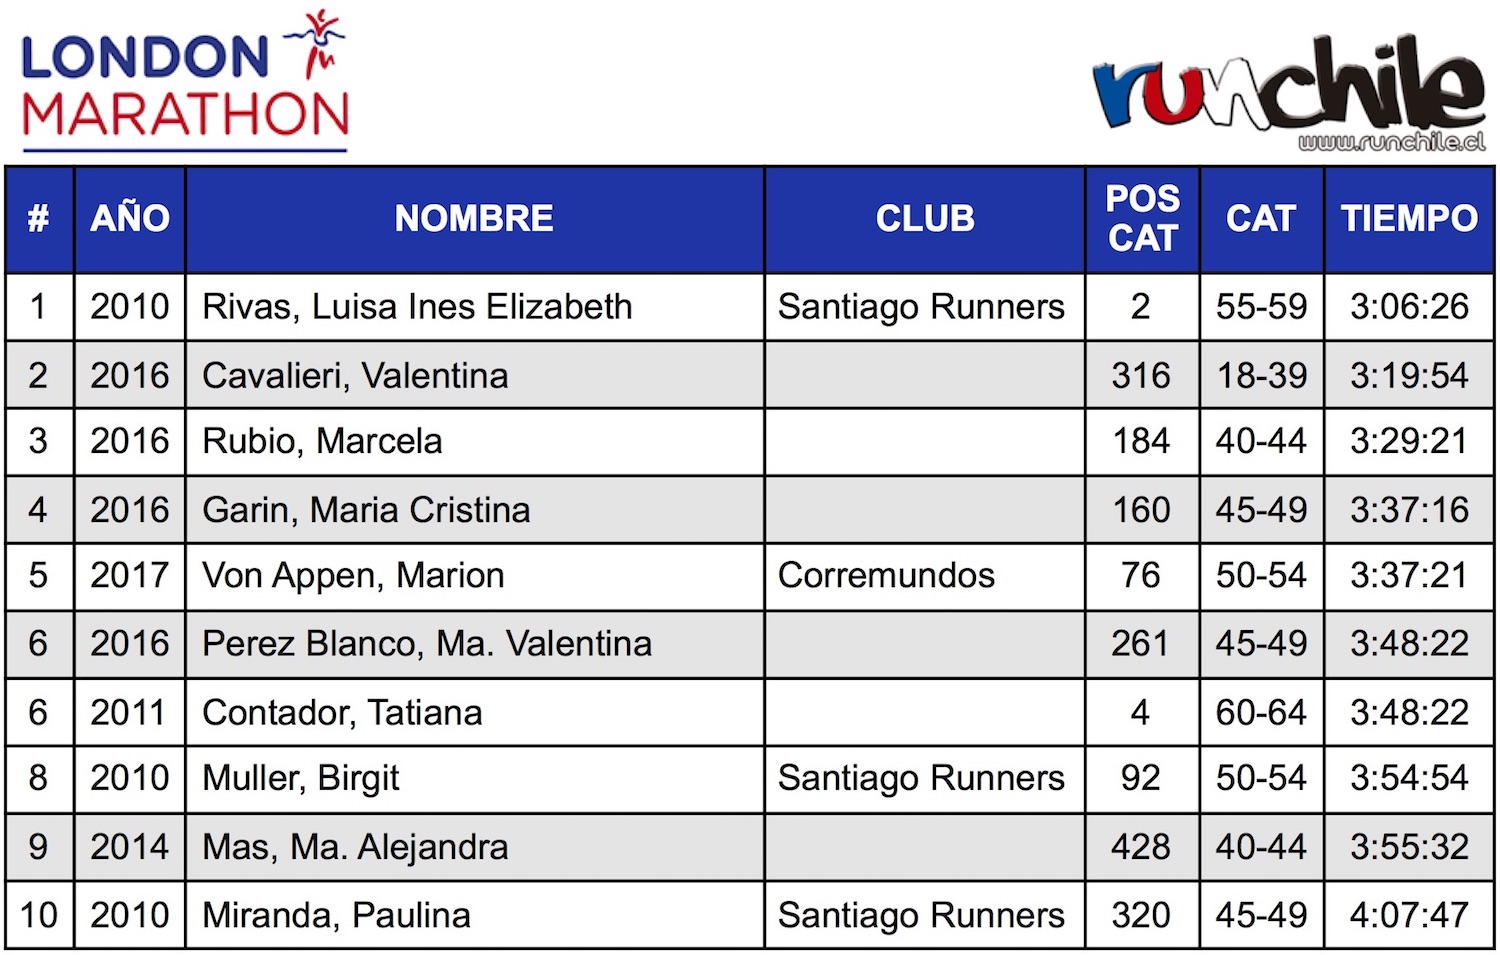 Tabla_Top10_Chilenos_London_Marathon_al_2017_Women__